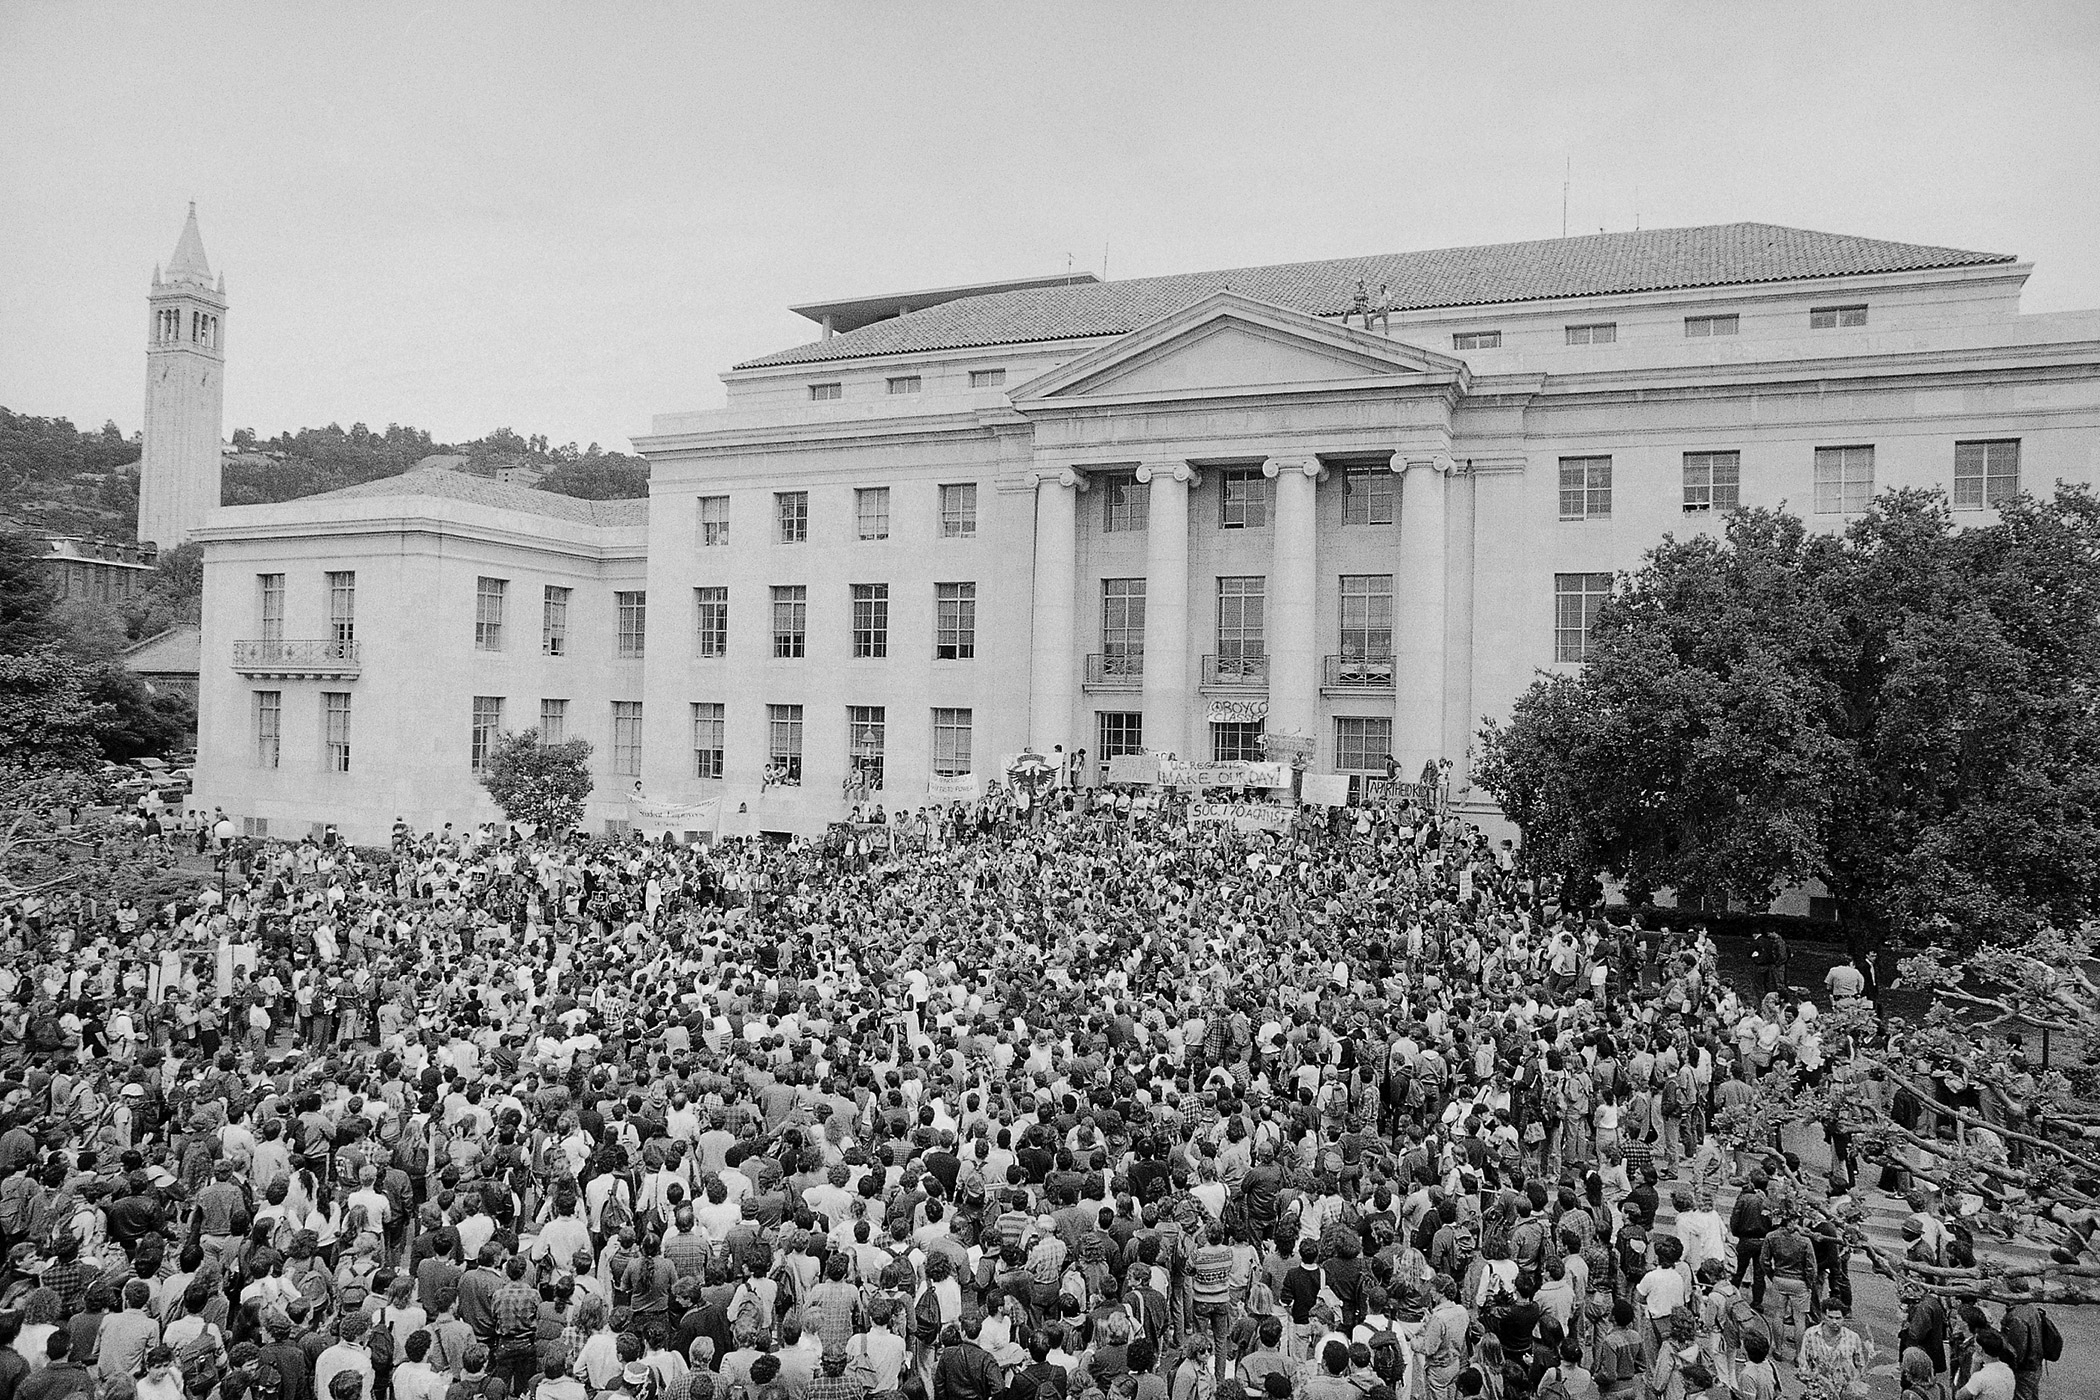 Several thousand students crowd into Sproul Plaza on the University of California-Berkeley campus in protest of the university's business ties with apartheid South Africa on April 16, 1985. The University of California eventually authorized the withdrawal of three billion dollars worth of investments from the apartheid state.